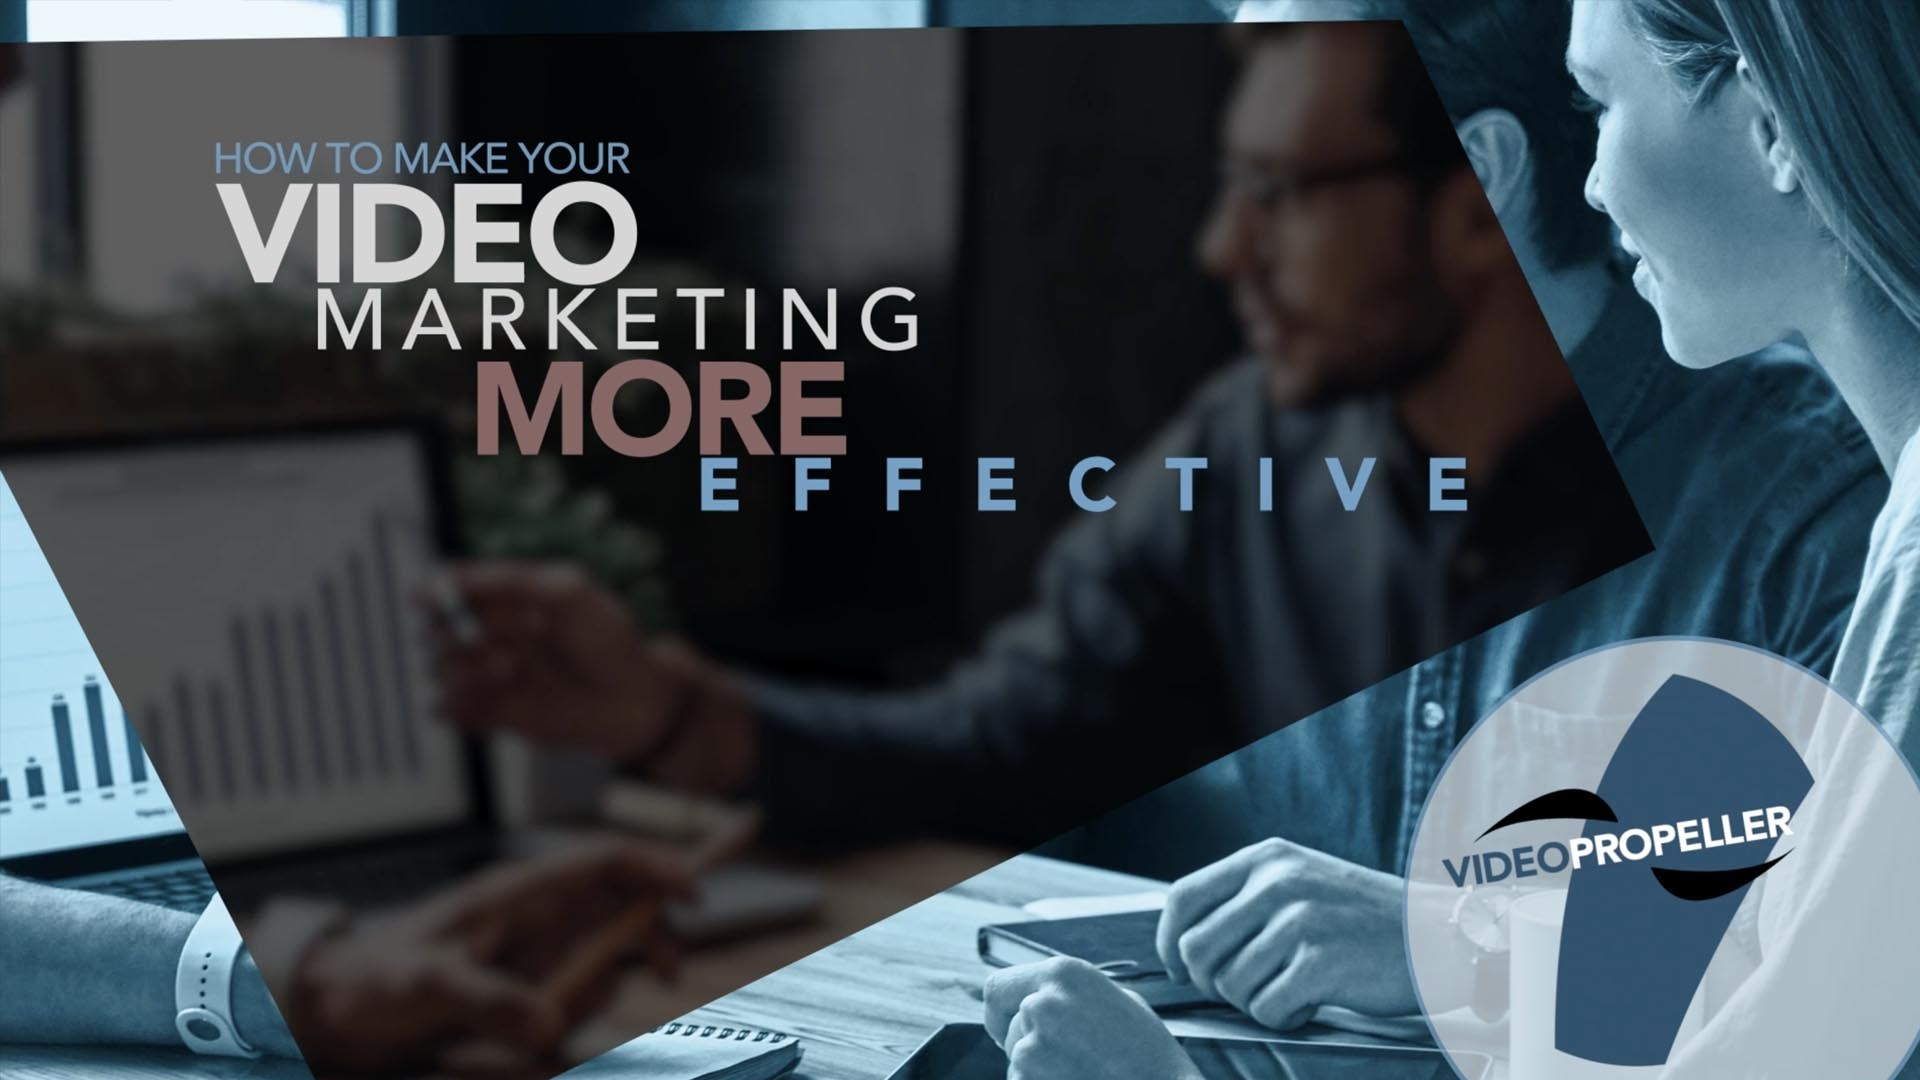 How to Make Your Video Marketing More Effective